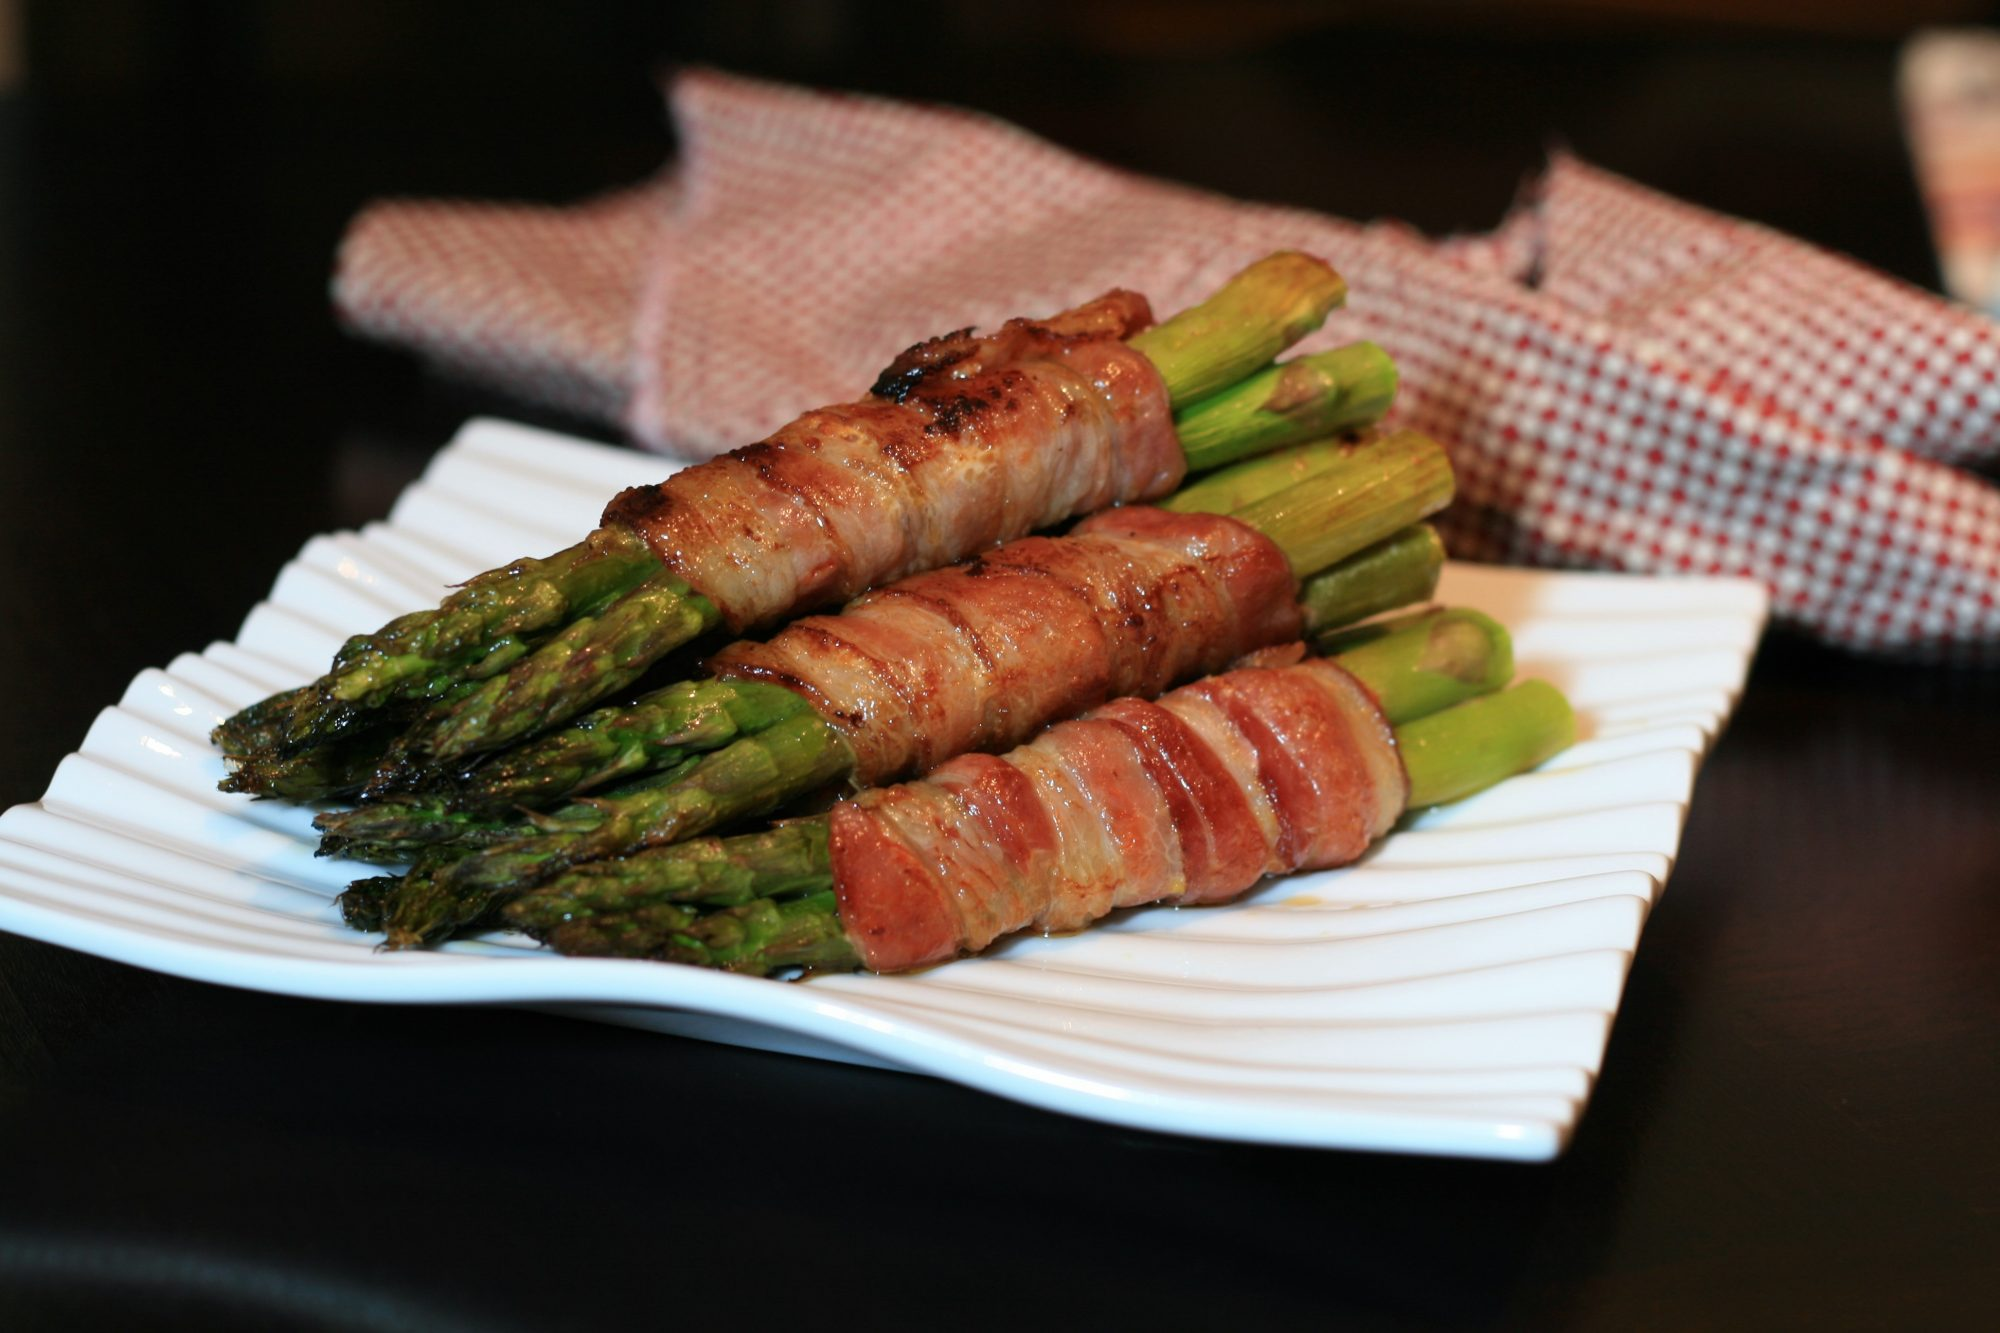 asparagus wrapped in bacon on white plate